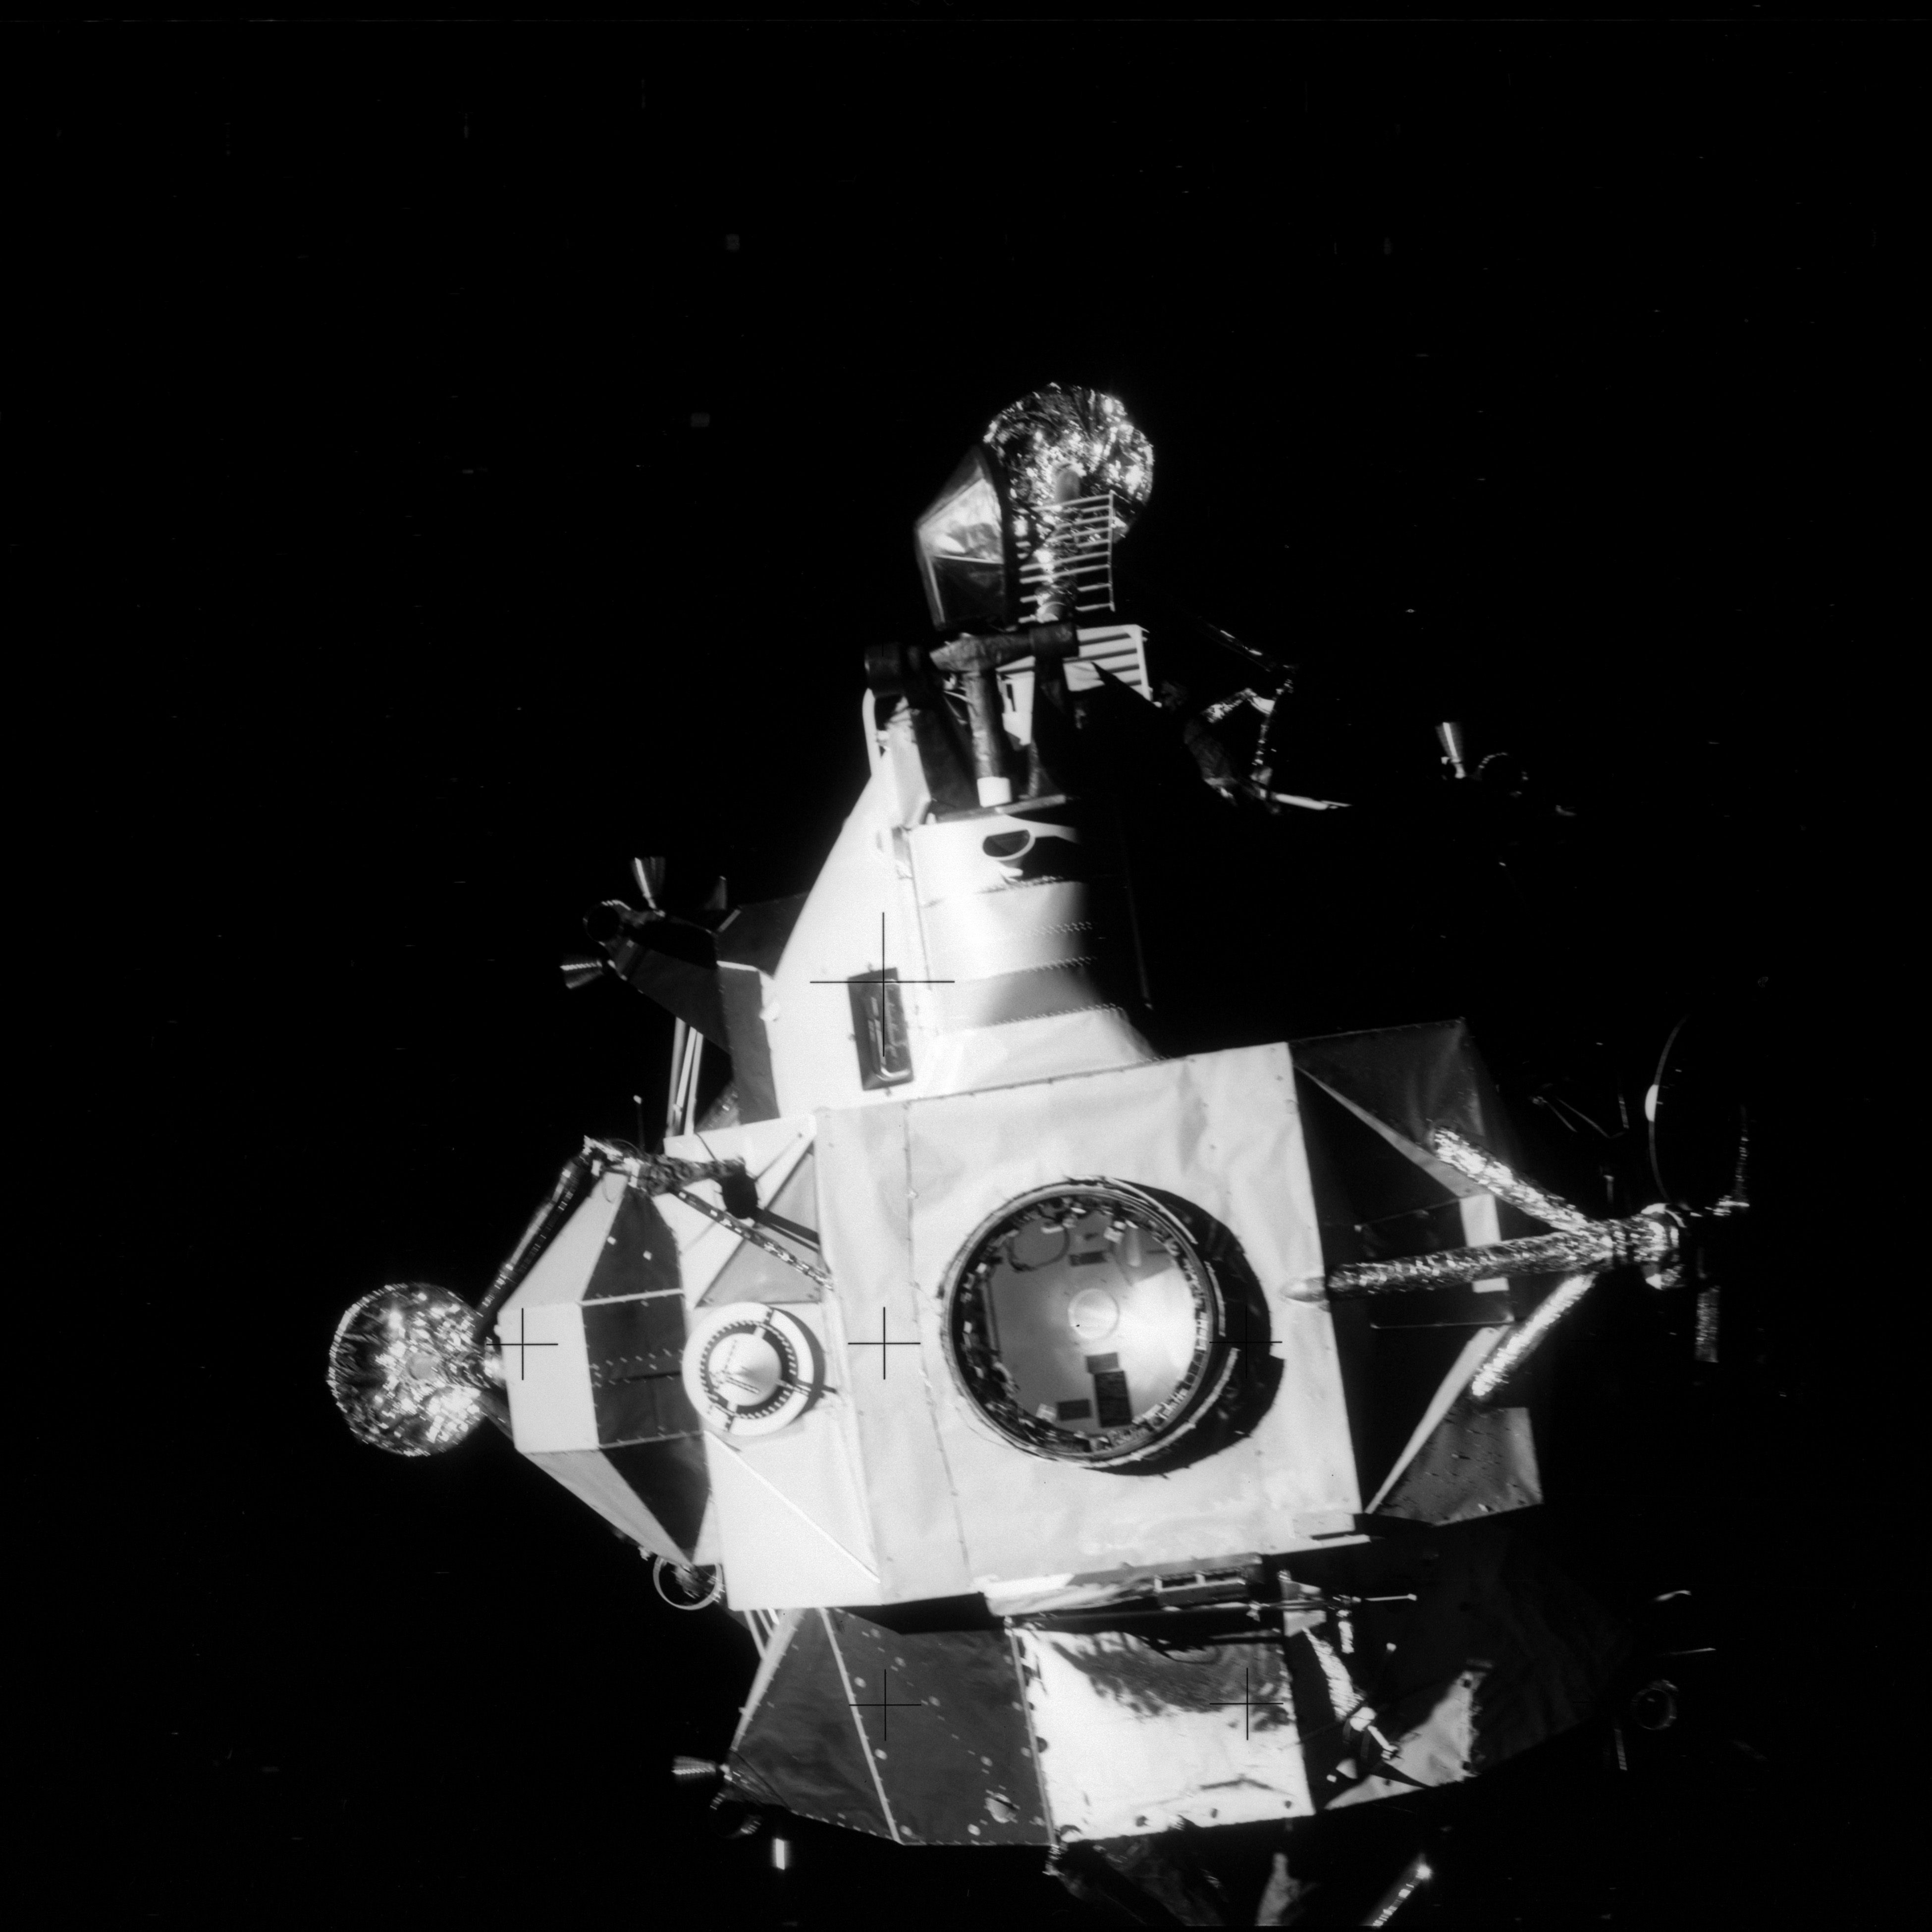 apollo 13 spacecraft Apollo 13 was the seventh manned mission in the american apollo space program and the third.